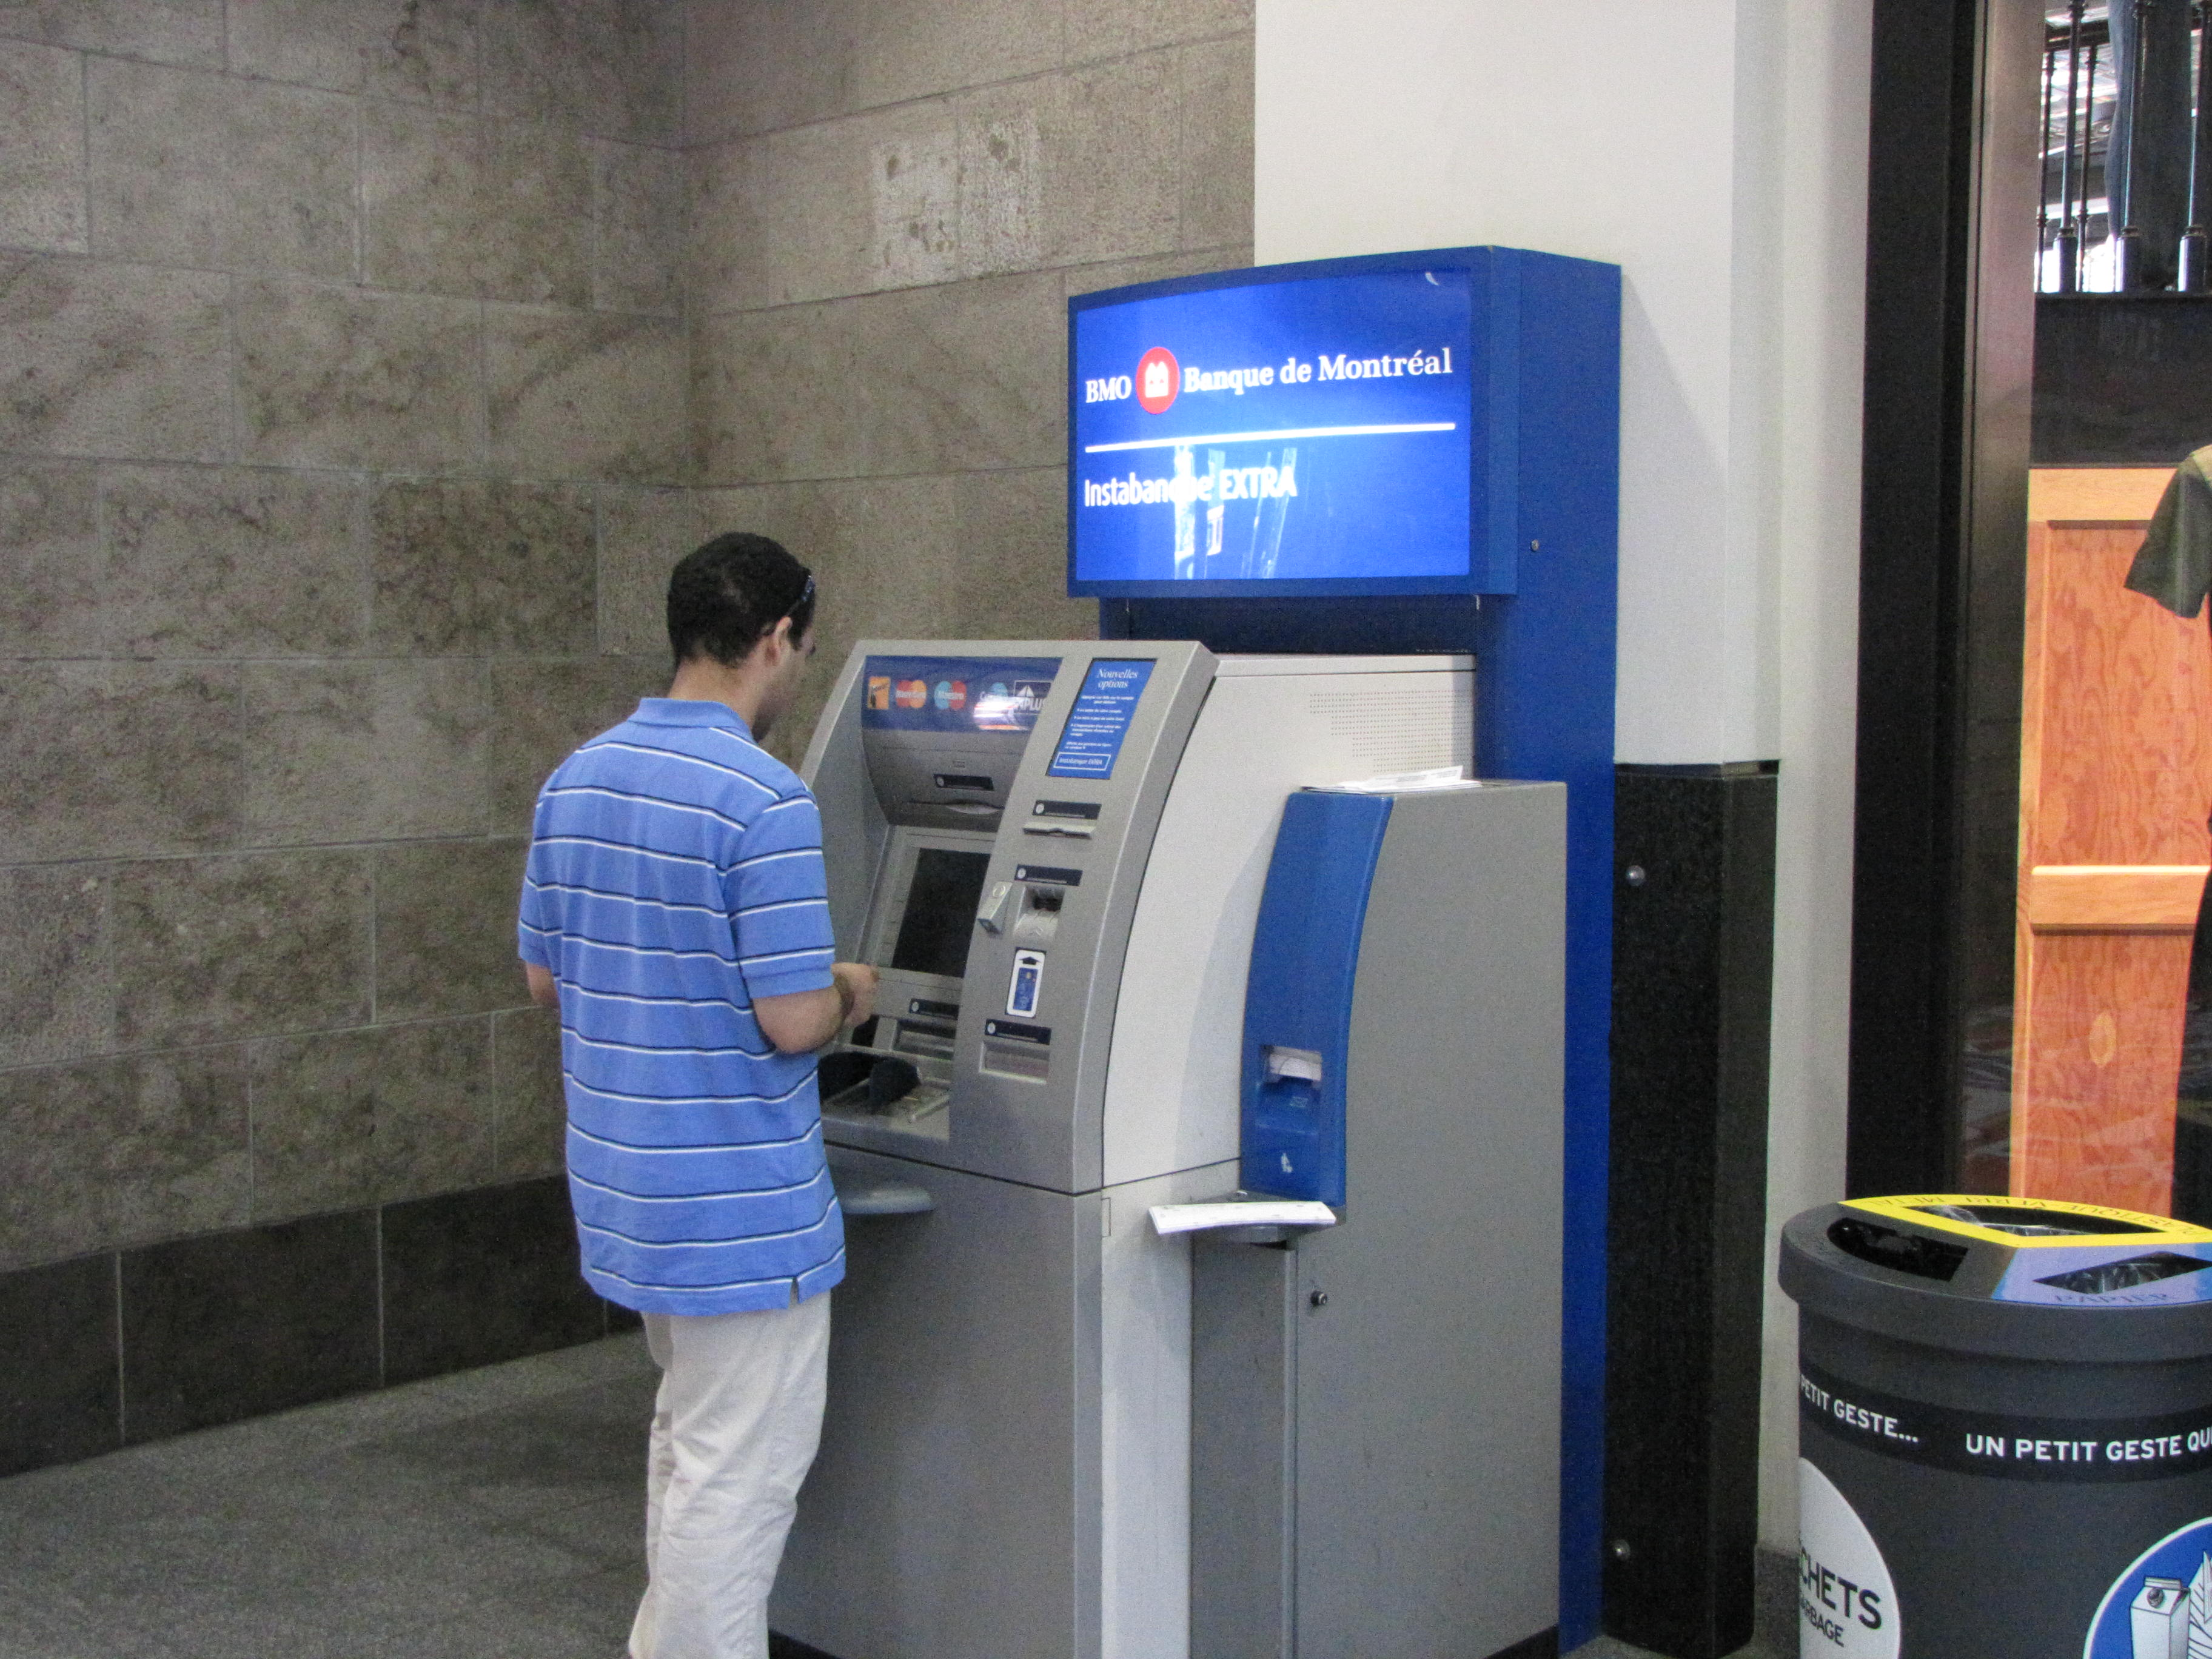 Teenage Boys Hacking Bmo Atm Payment Processing News